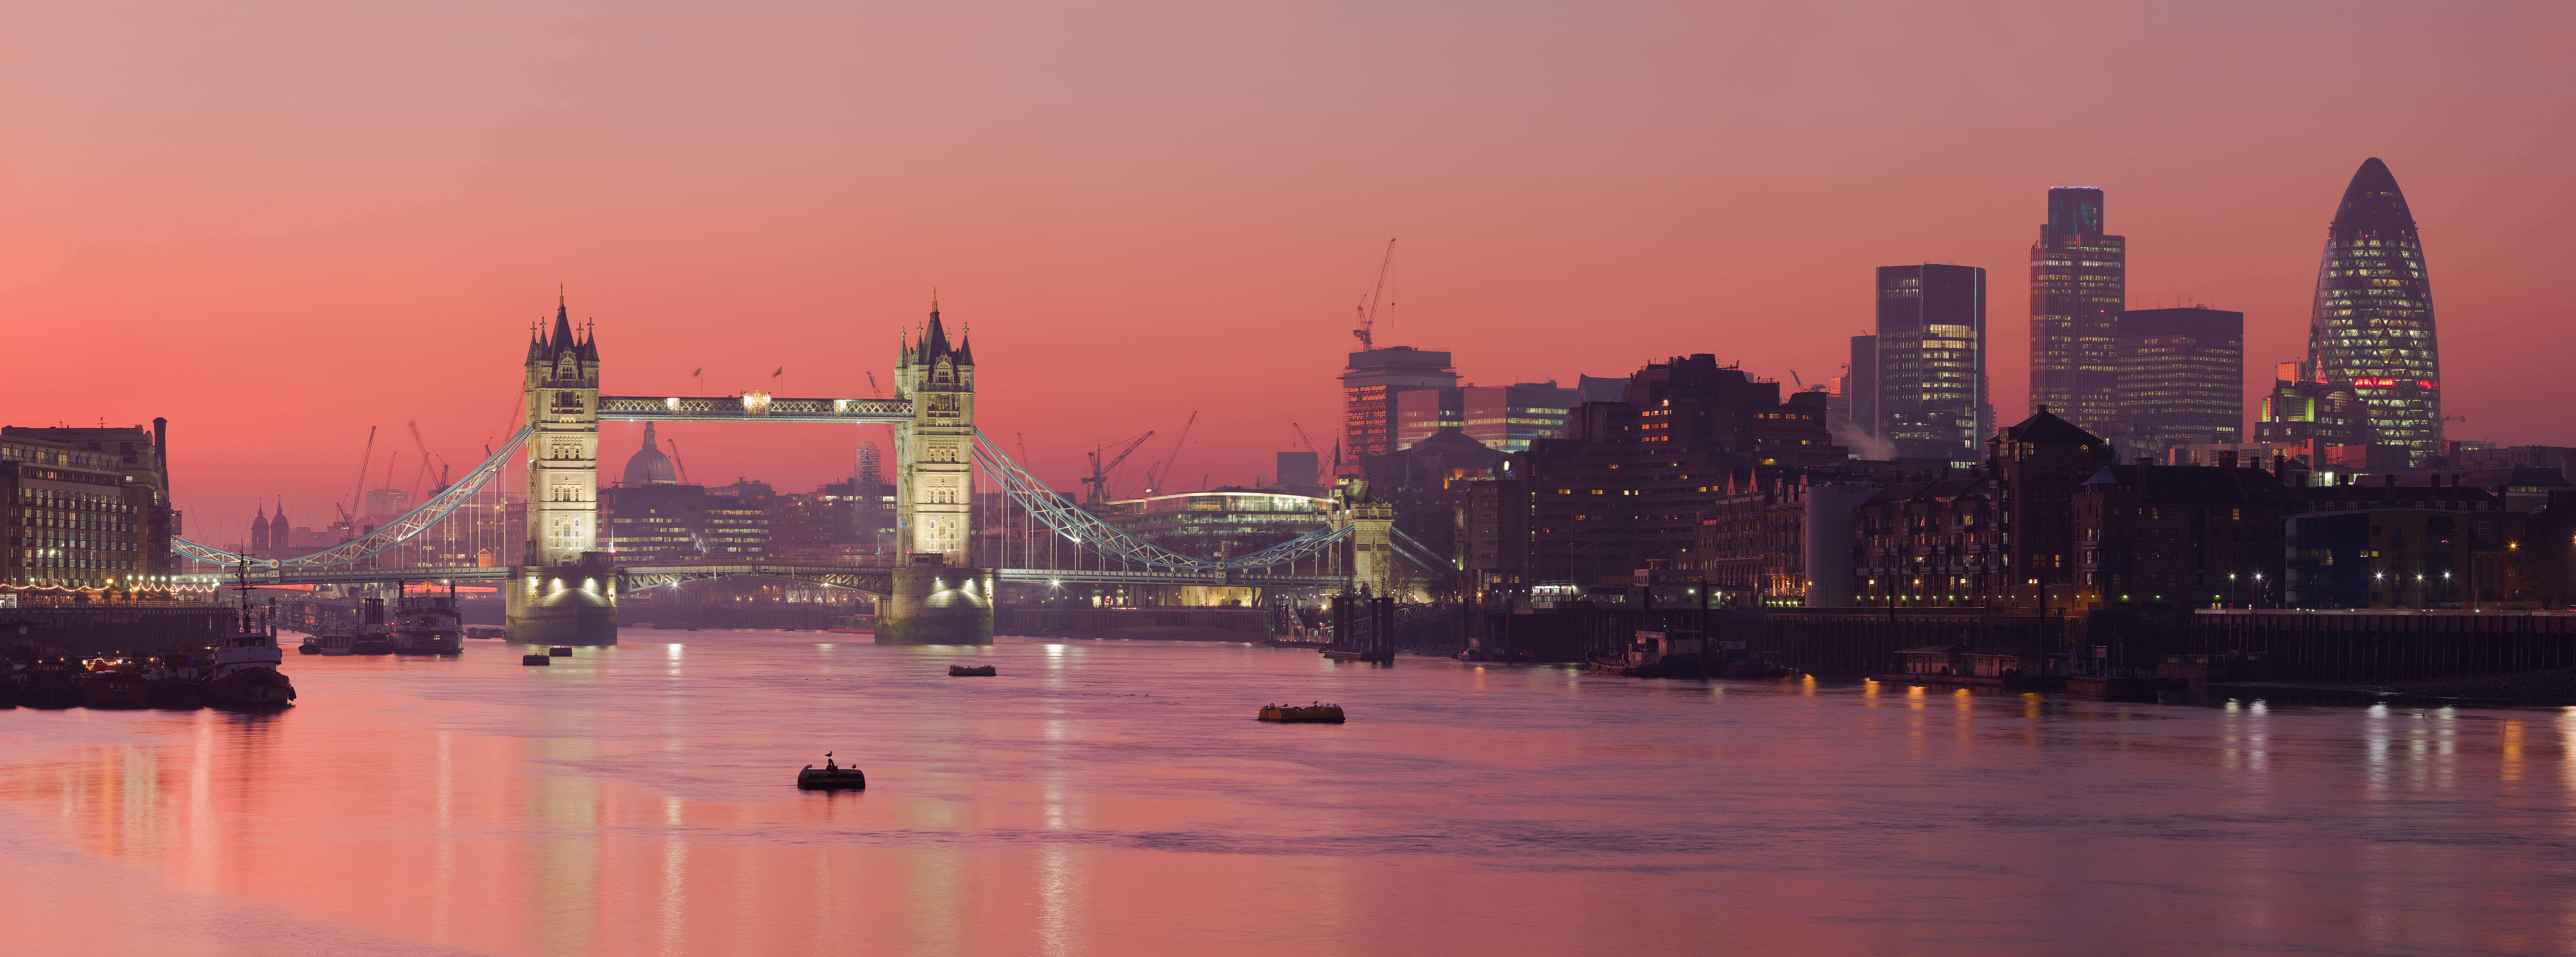 London then and now by Mai Hamzah - Ourboox.com